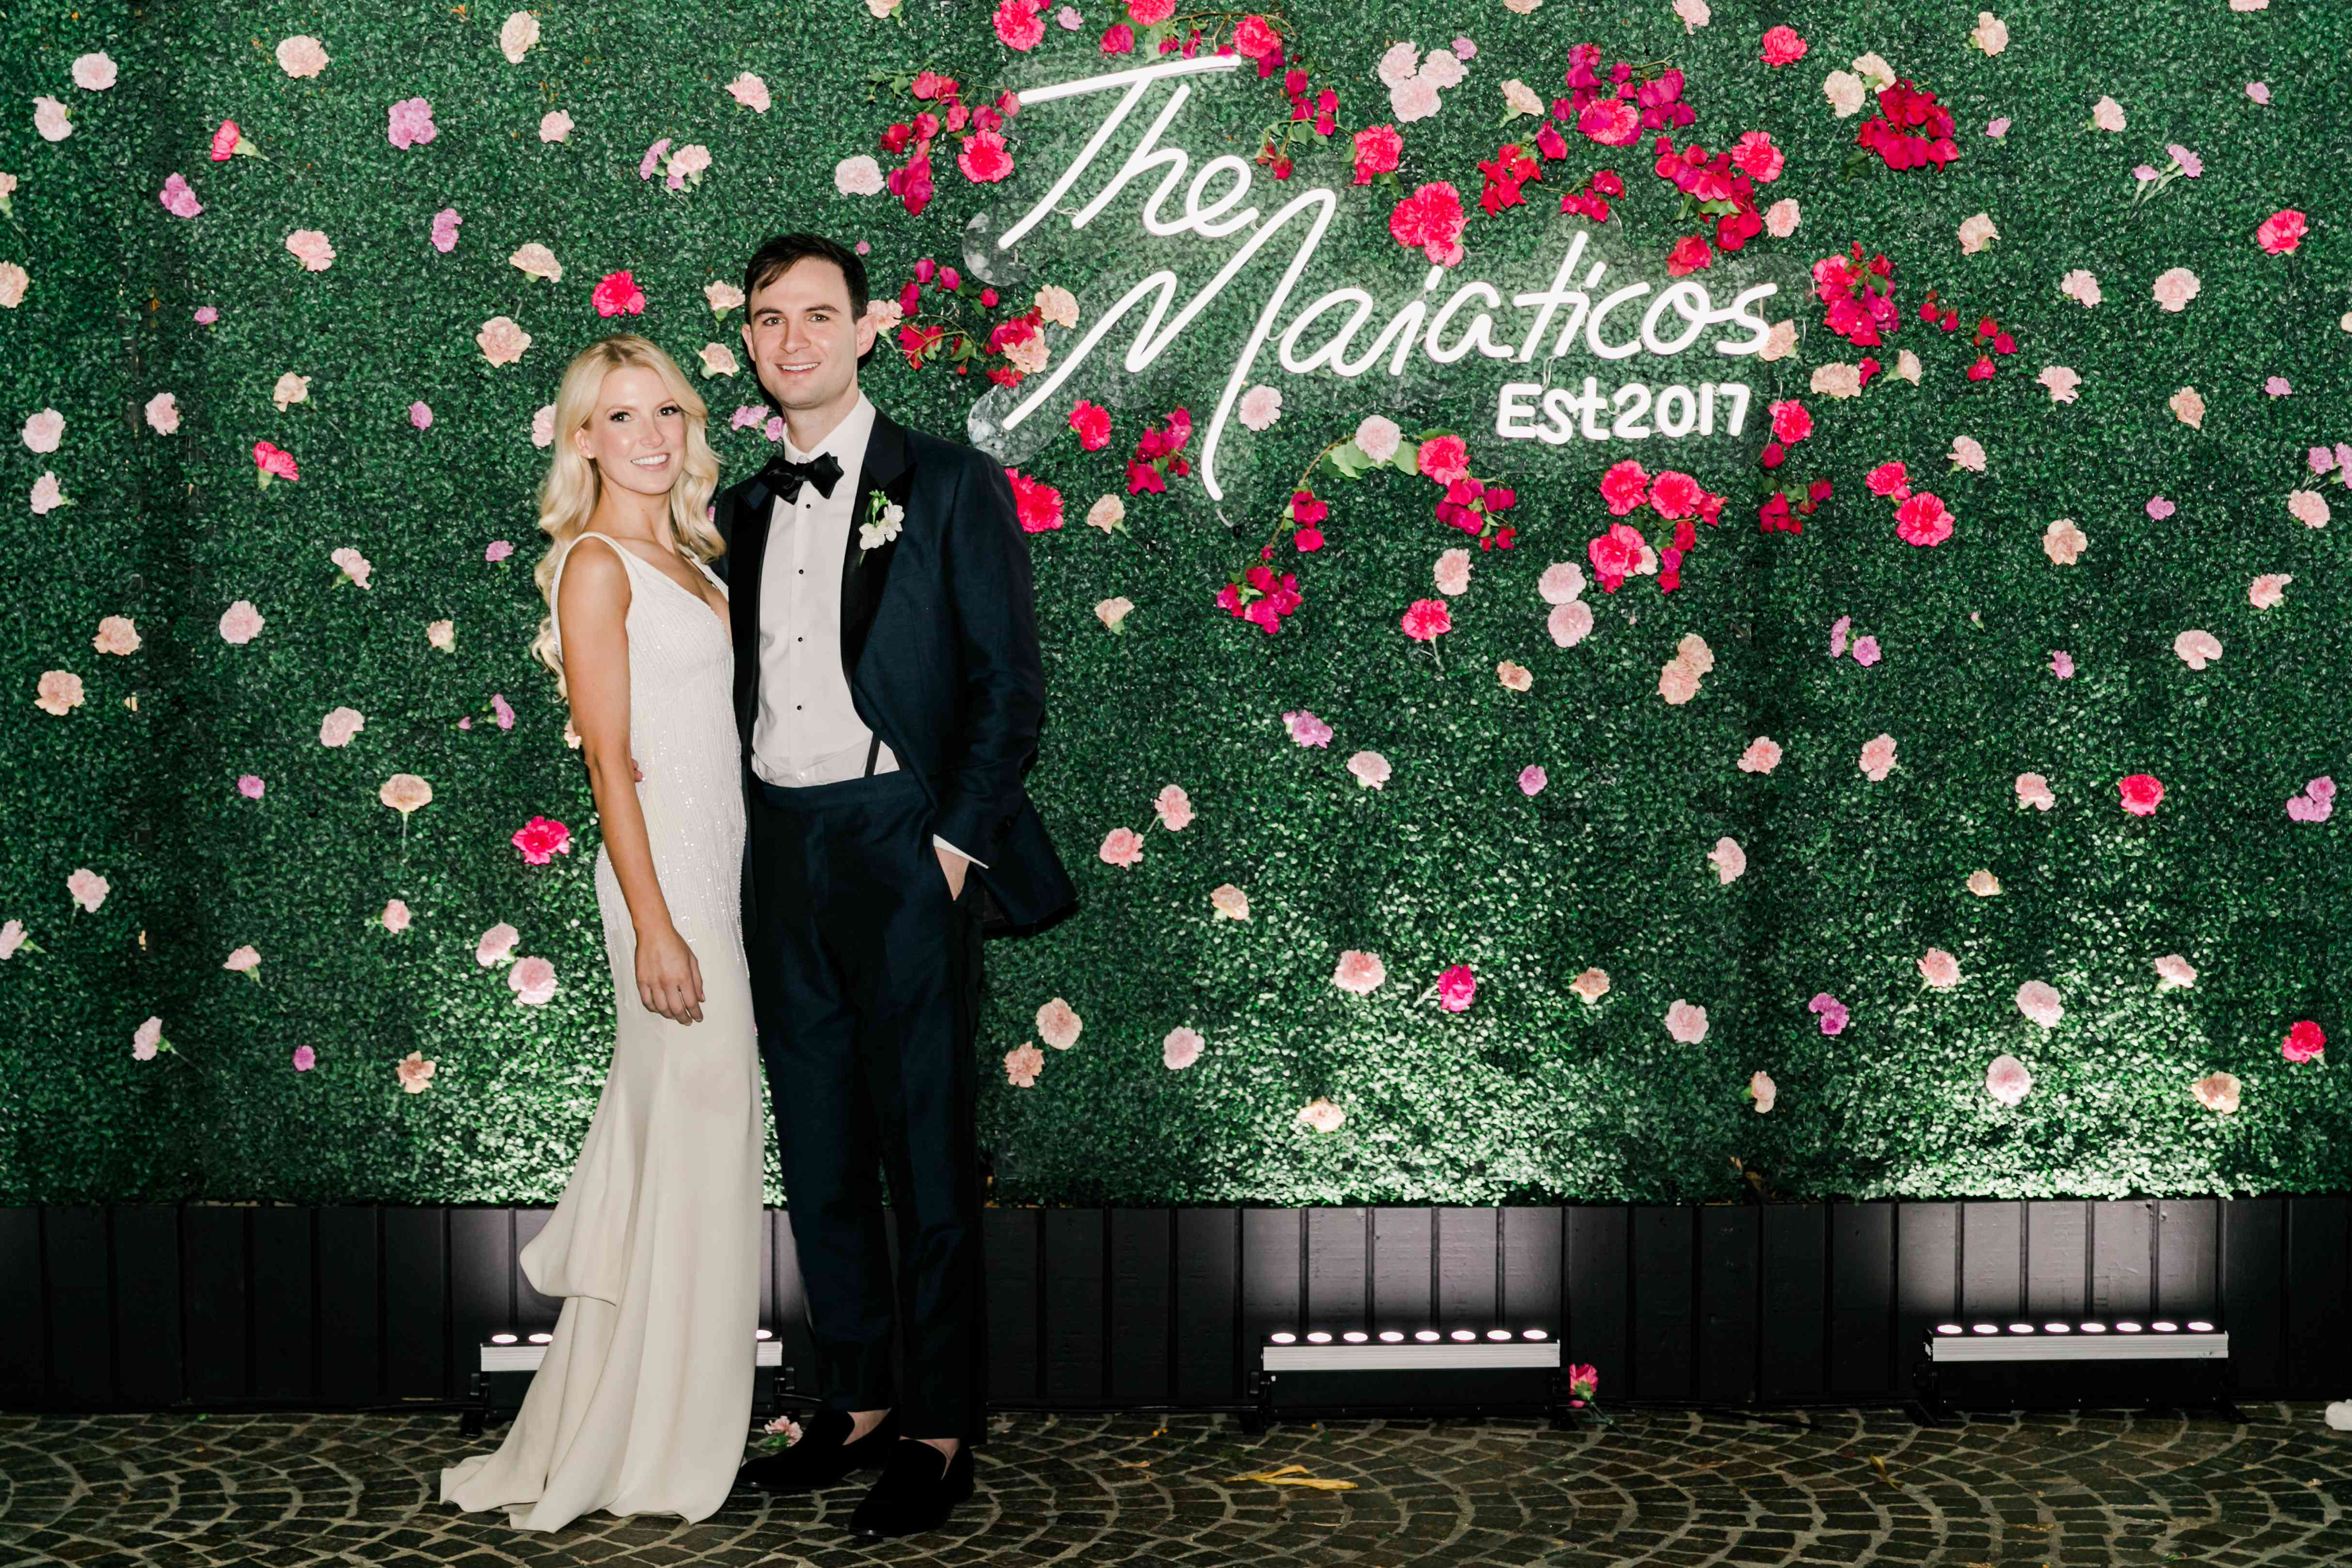 Newlyweds in front of flower wall with neon sign of their name